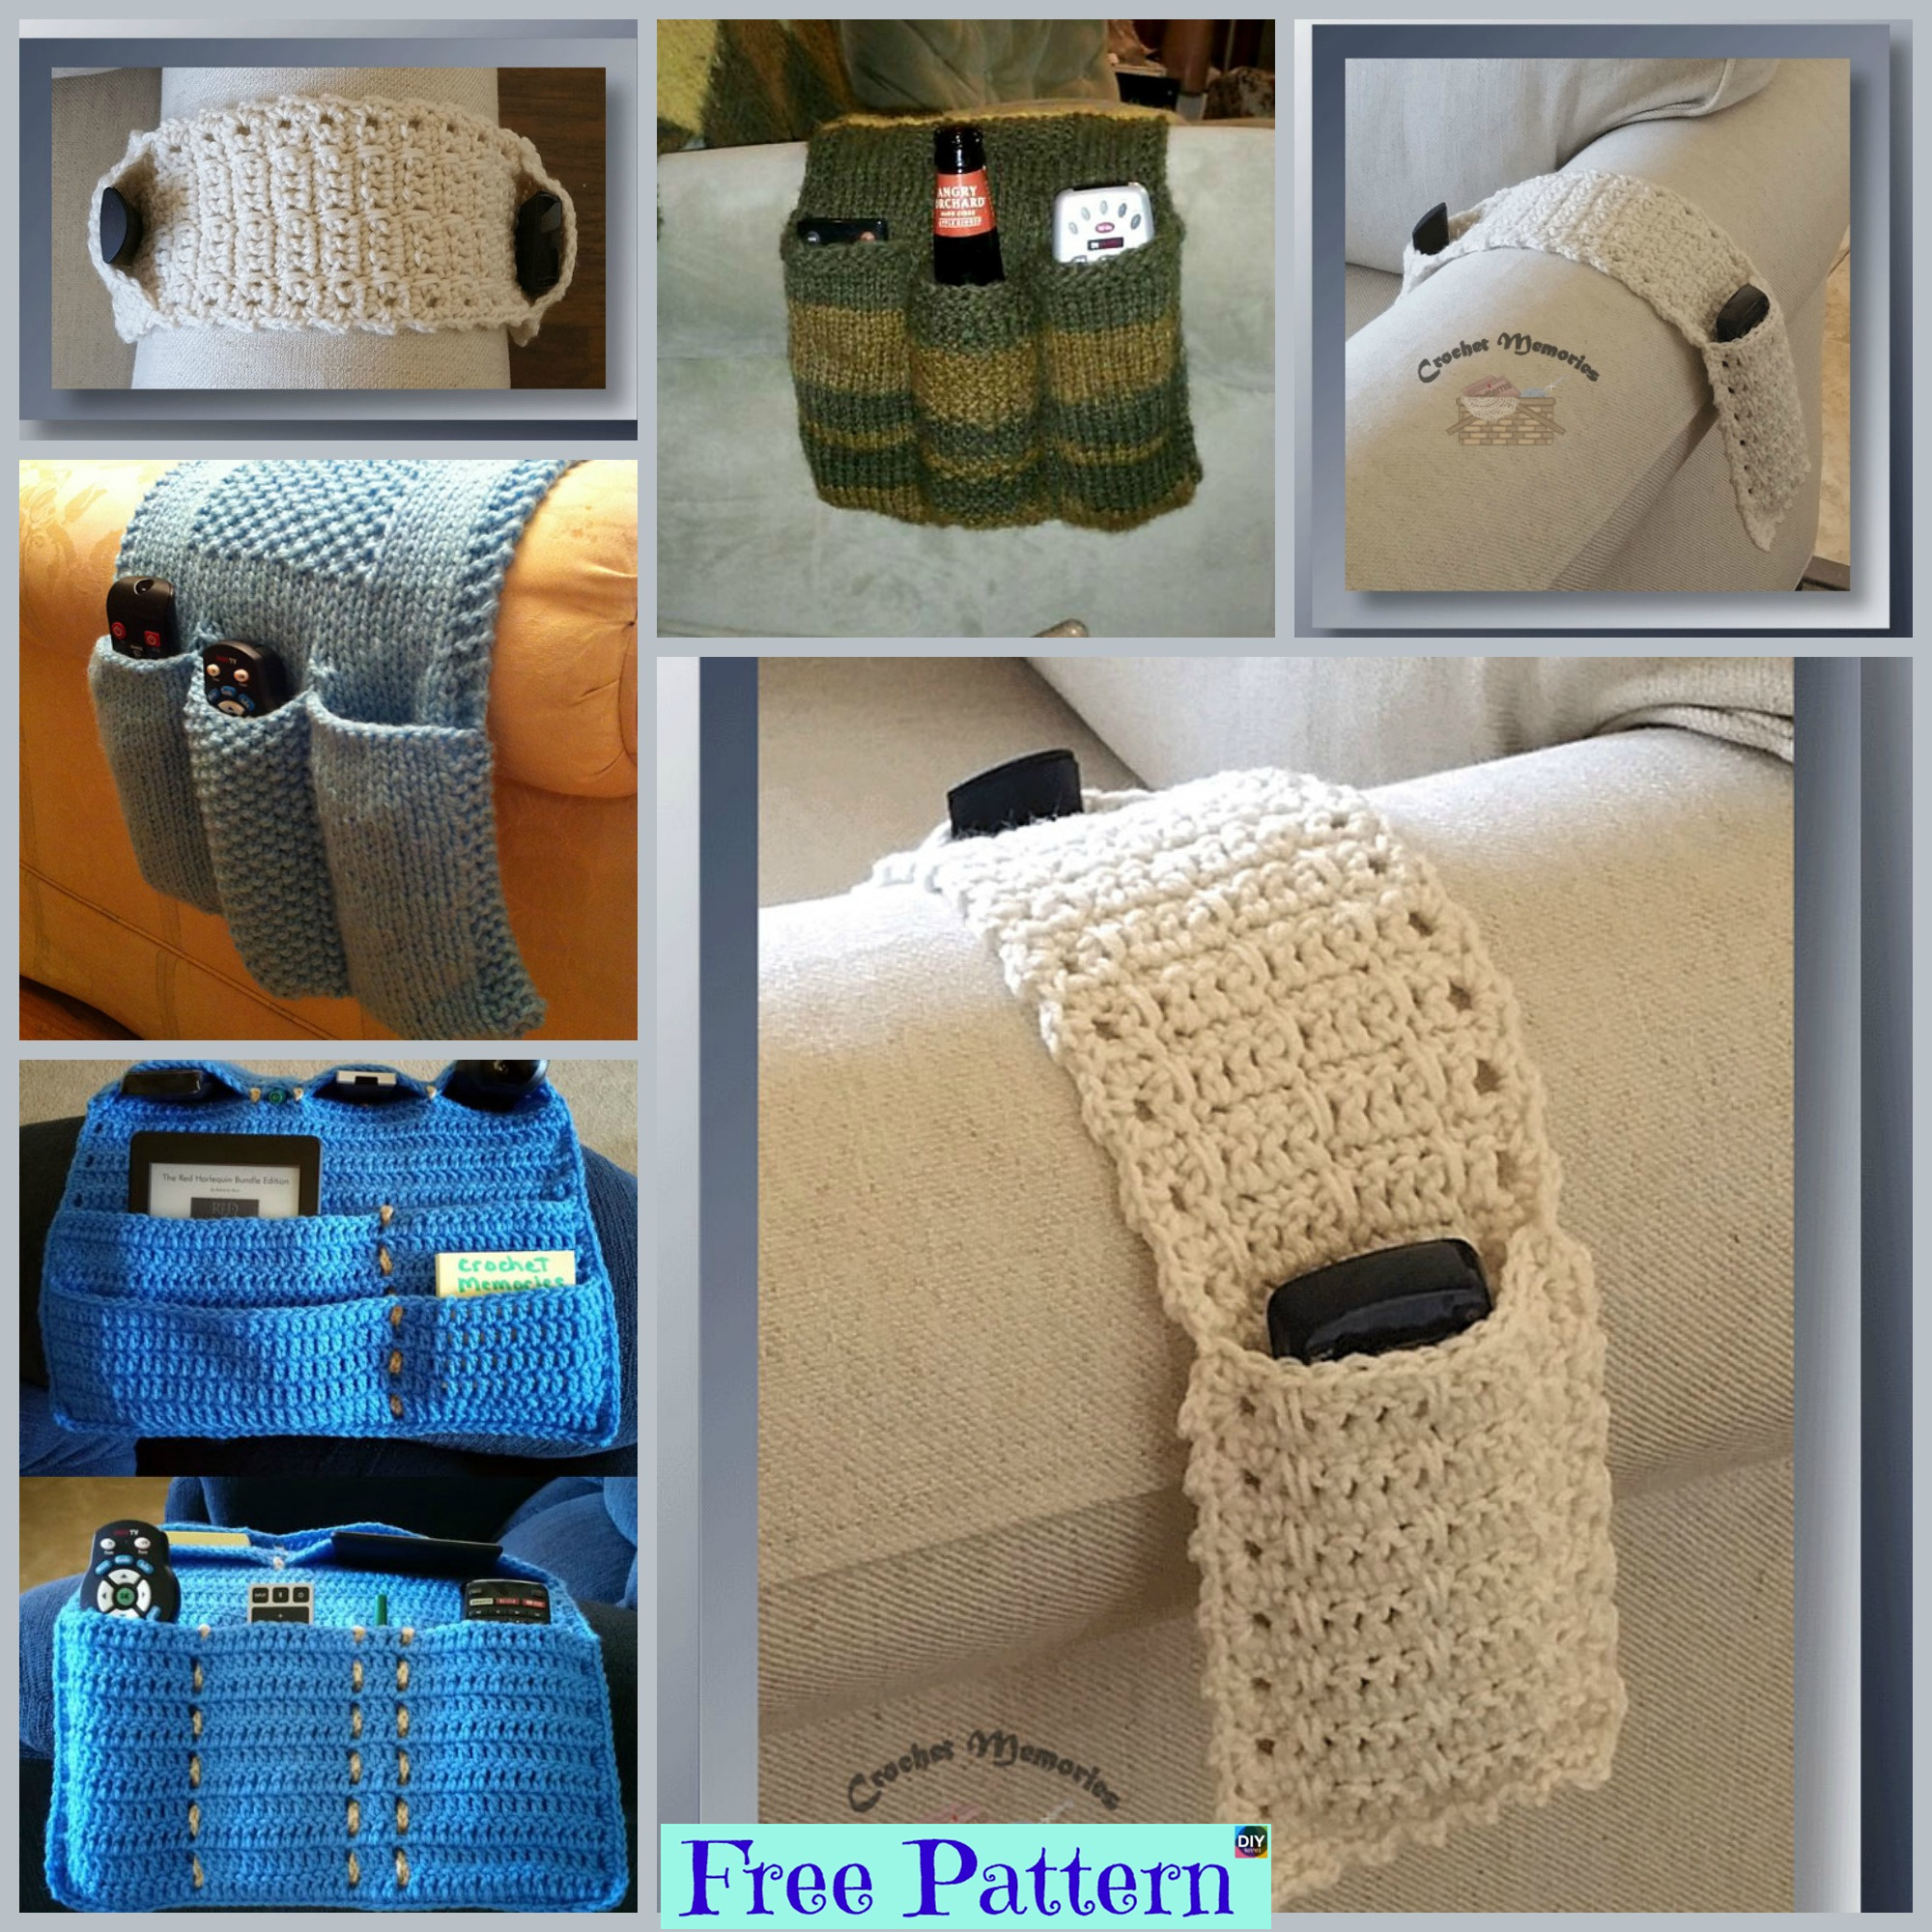 diy4ever-Knit & Crochet Remote Caddy - Free Patterns